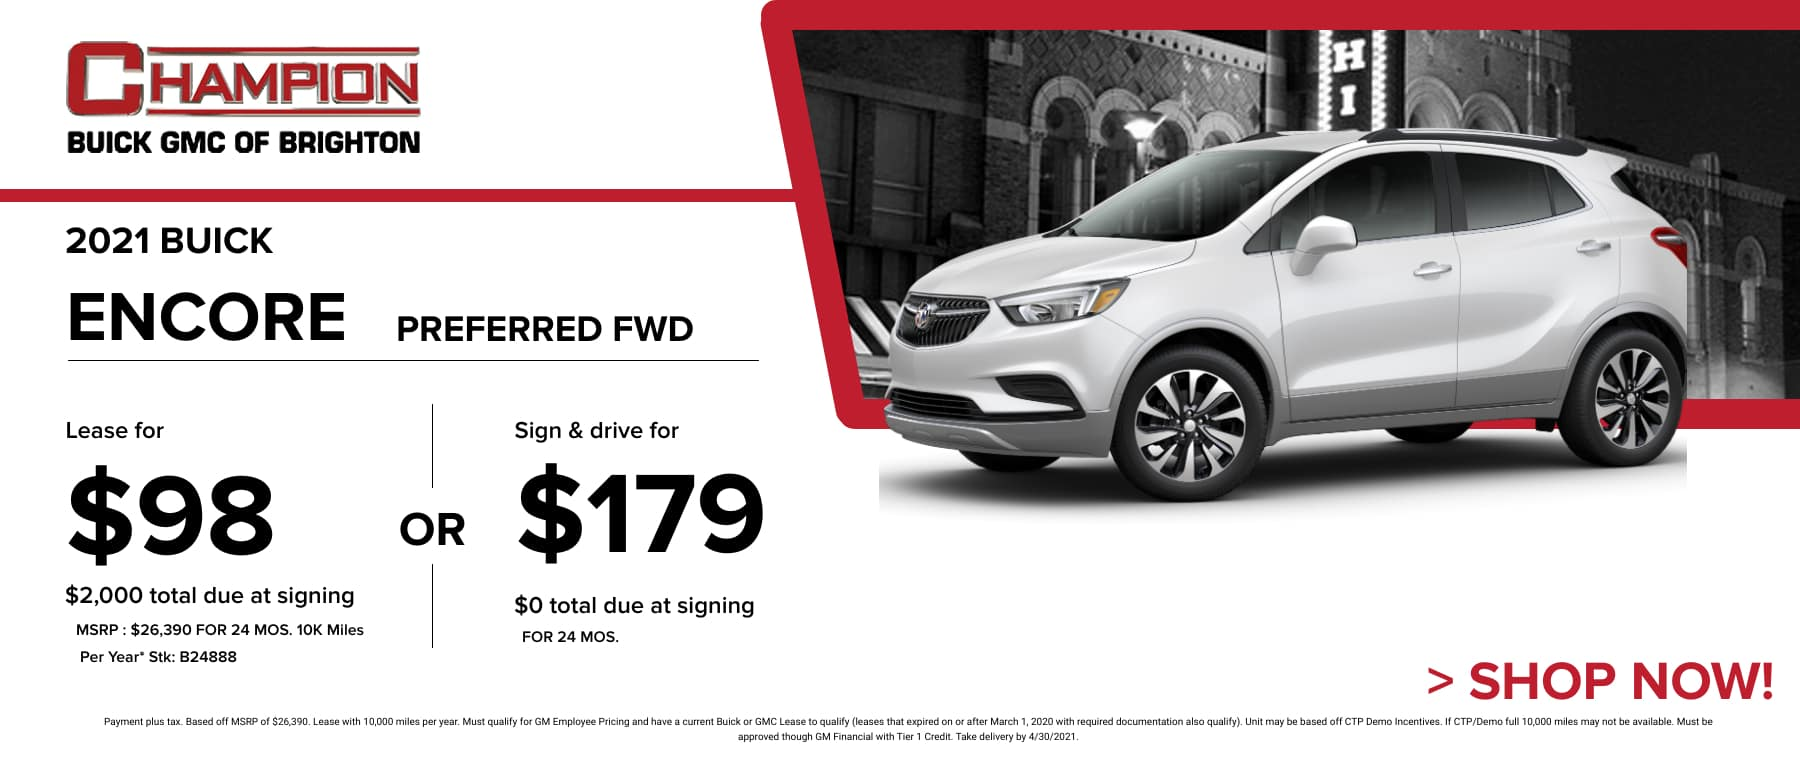 2021 Buick Encore Preferred FWD- Lease for just: $98 per month for 24 months $2,000 total due at signing. Sign & Drive for $179 per month for 24 months. *Stock #B24888. MSRP: $26,390 Payment plus tax. Based off MSRP of $26,390. Lease with 10,000 miles per year. Must qualify for GM Employee Pricing and have a current Buick or GMC Lease to qualify (leases that expired on or after March 1, 2020 with required documentation also qualify). Unit may be based off CTP Demo Incentives. If CTP/Demo full 10,000 miles may not be available. Must be approved though GM Financial with Tier 1 Credit. Take delivery by 4/30/2021.